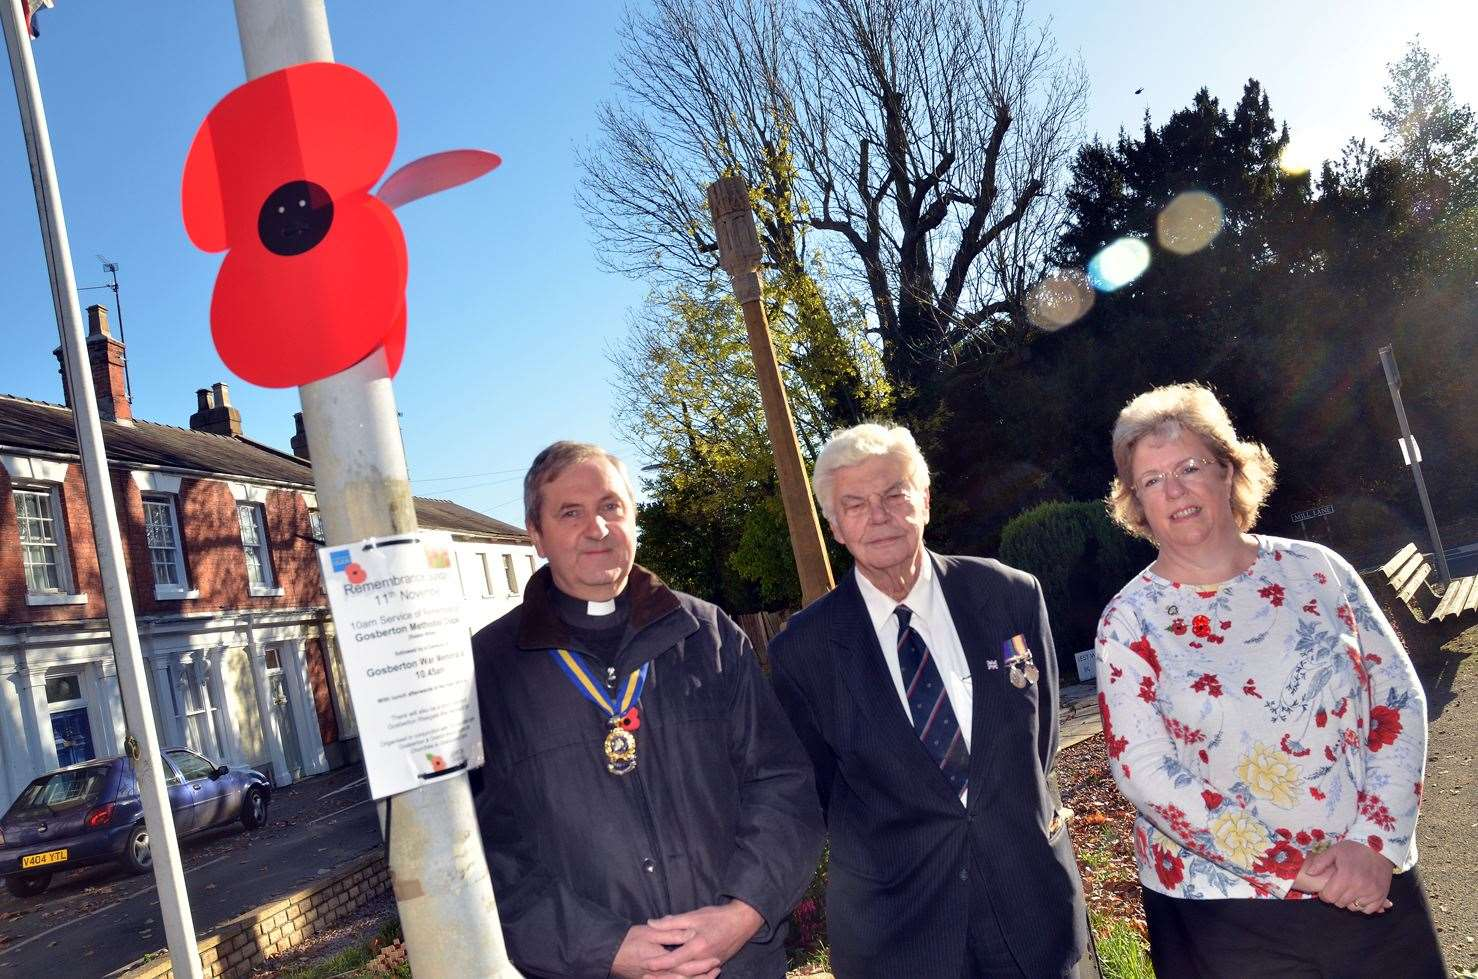 The Rev Ian Walters, vicar of Gosberton and chairman of Gosberton's Royal British Legion branch, Major Ron Meredith, branch president, and Debbie Reynolds, branch treasurer.Photo by Tim Wilson.SG-221018-4